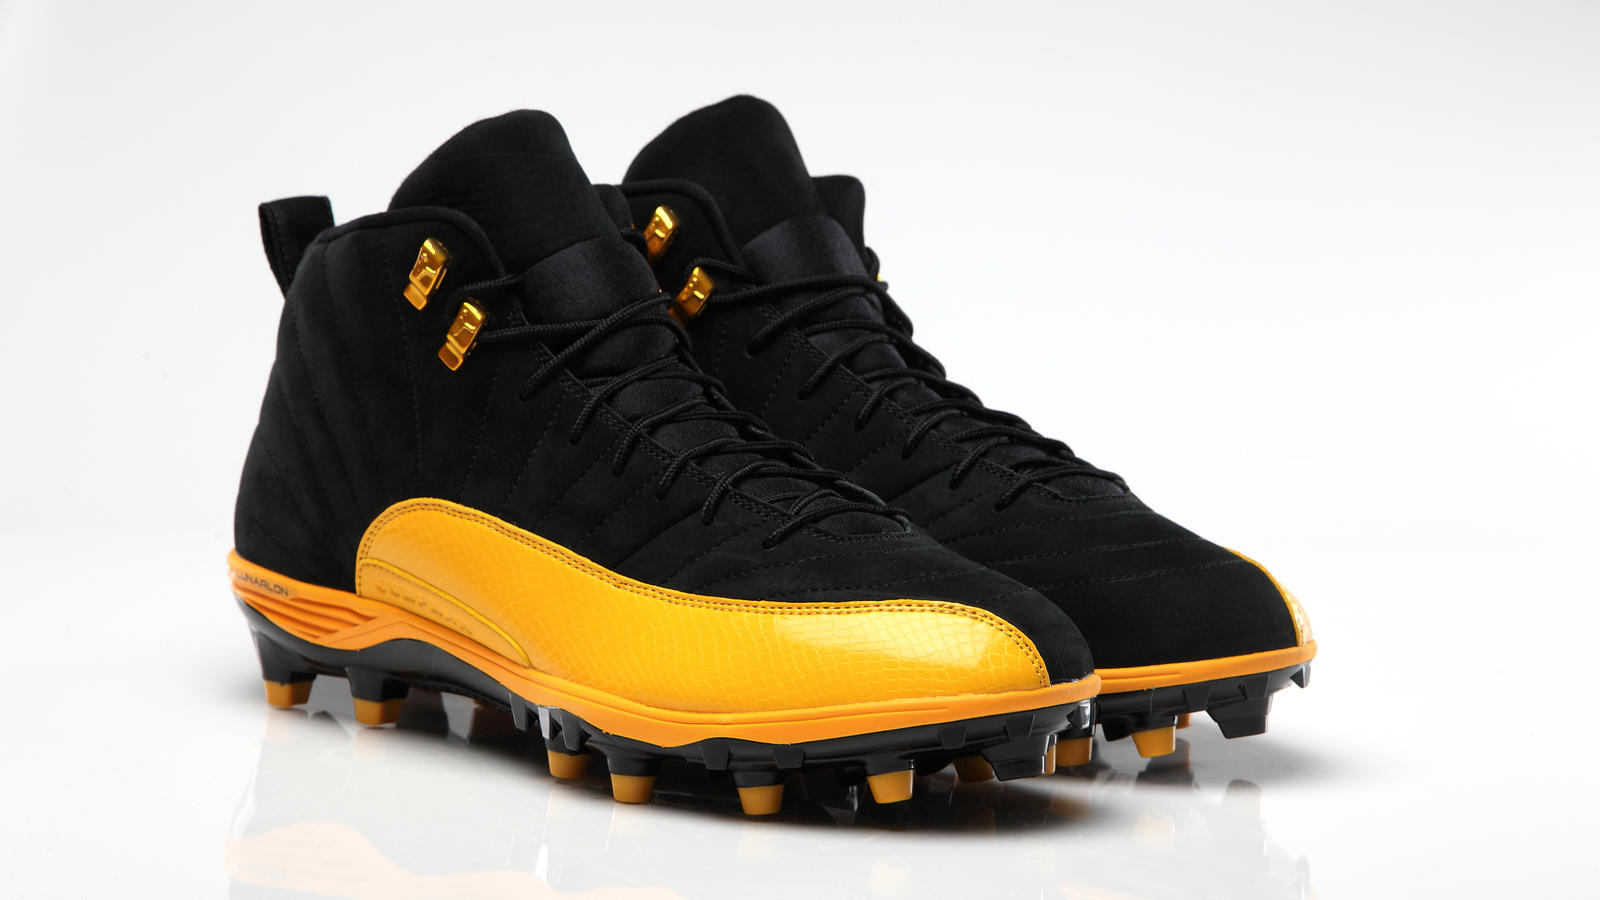 Jordan Brand Football Athletes Wear Air Xii